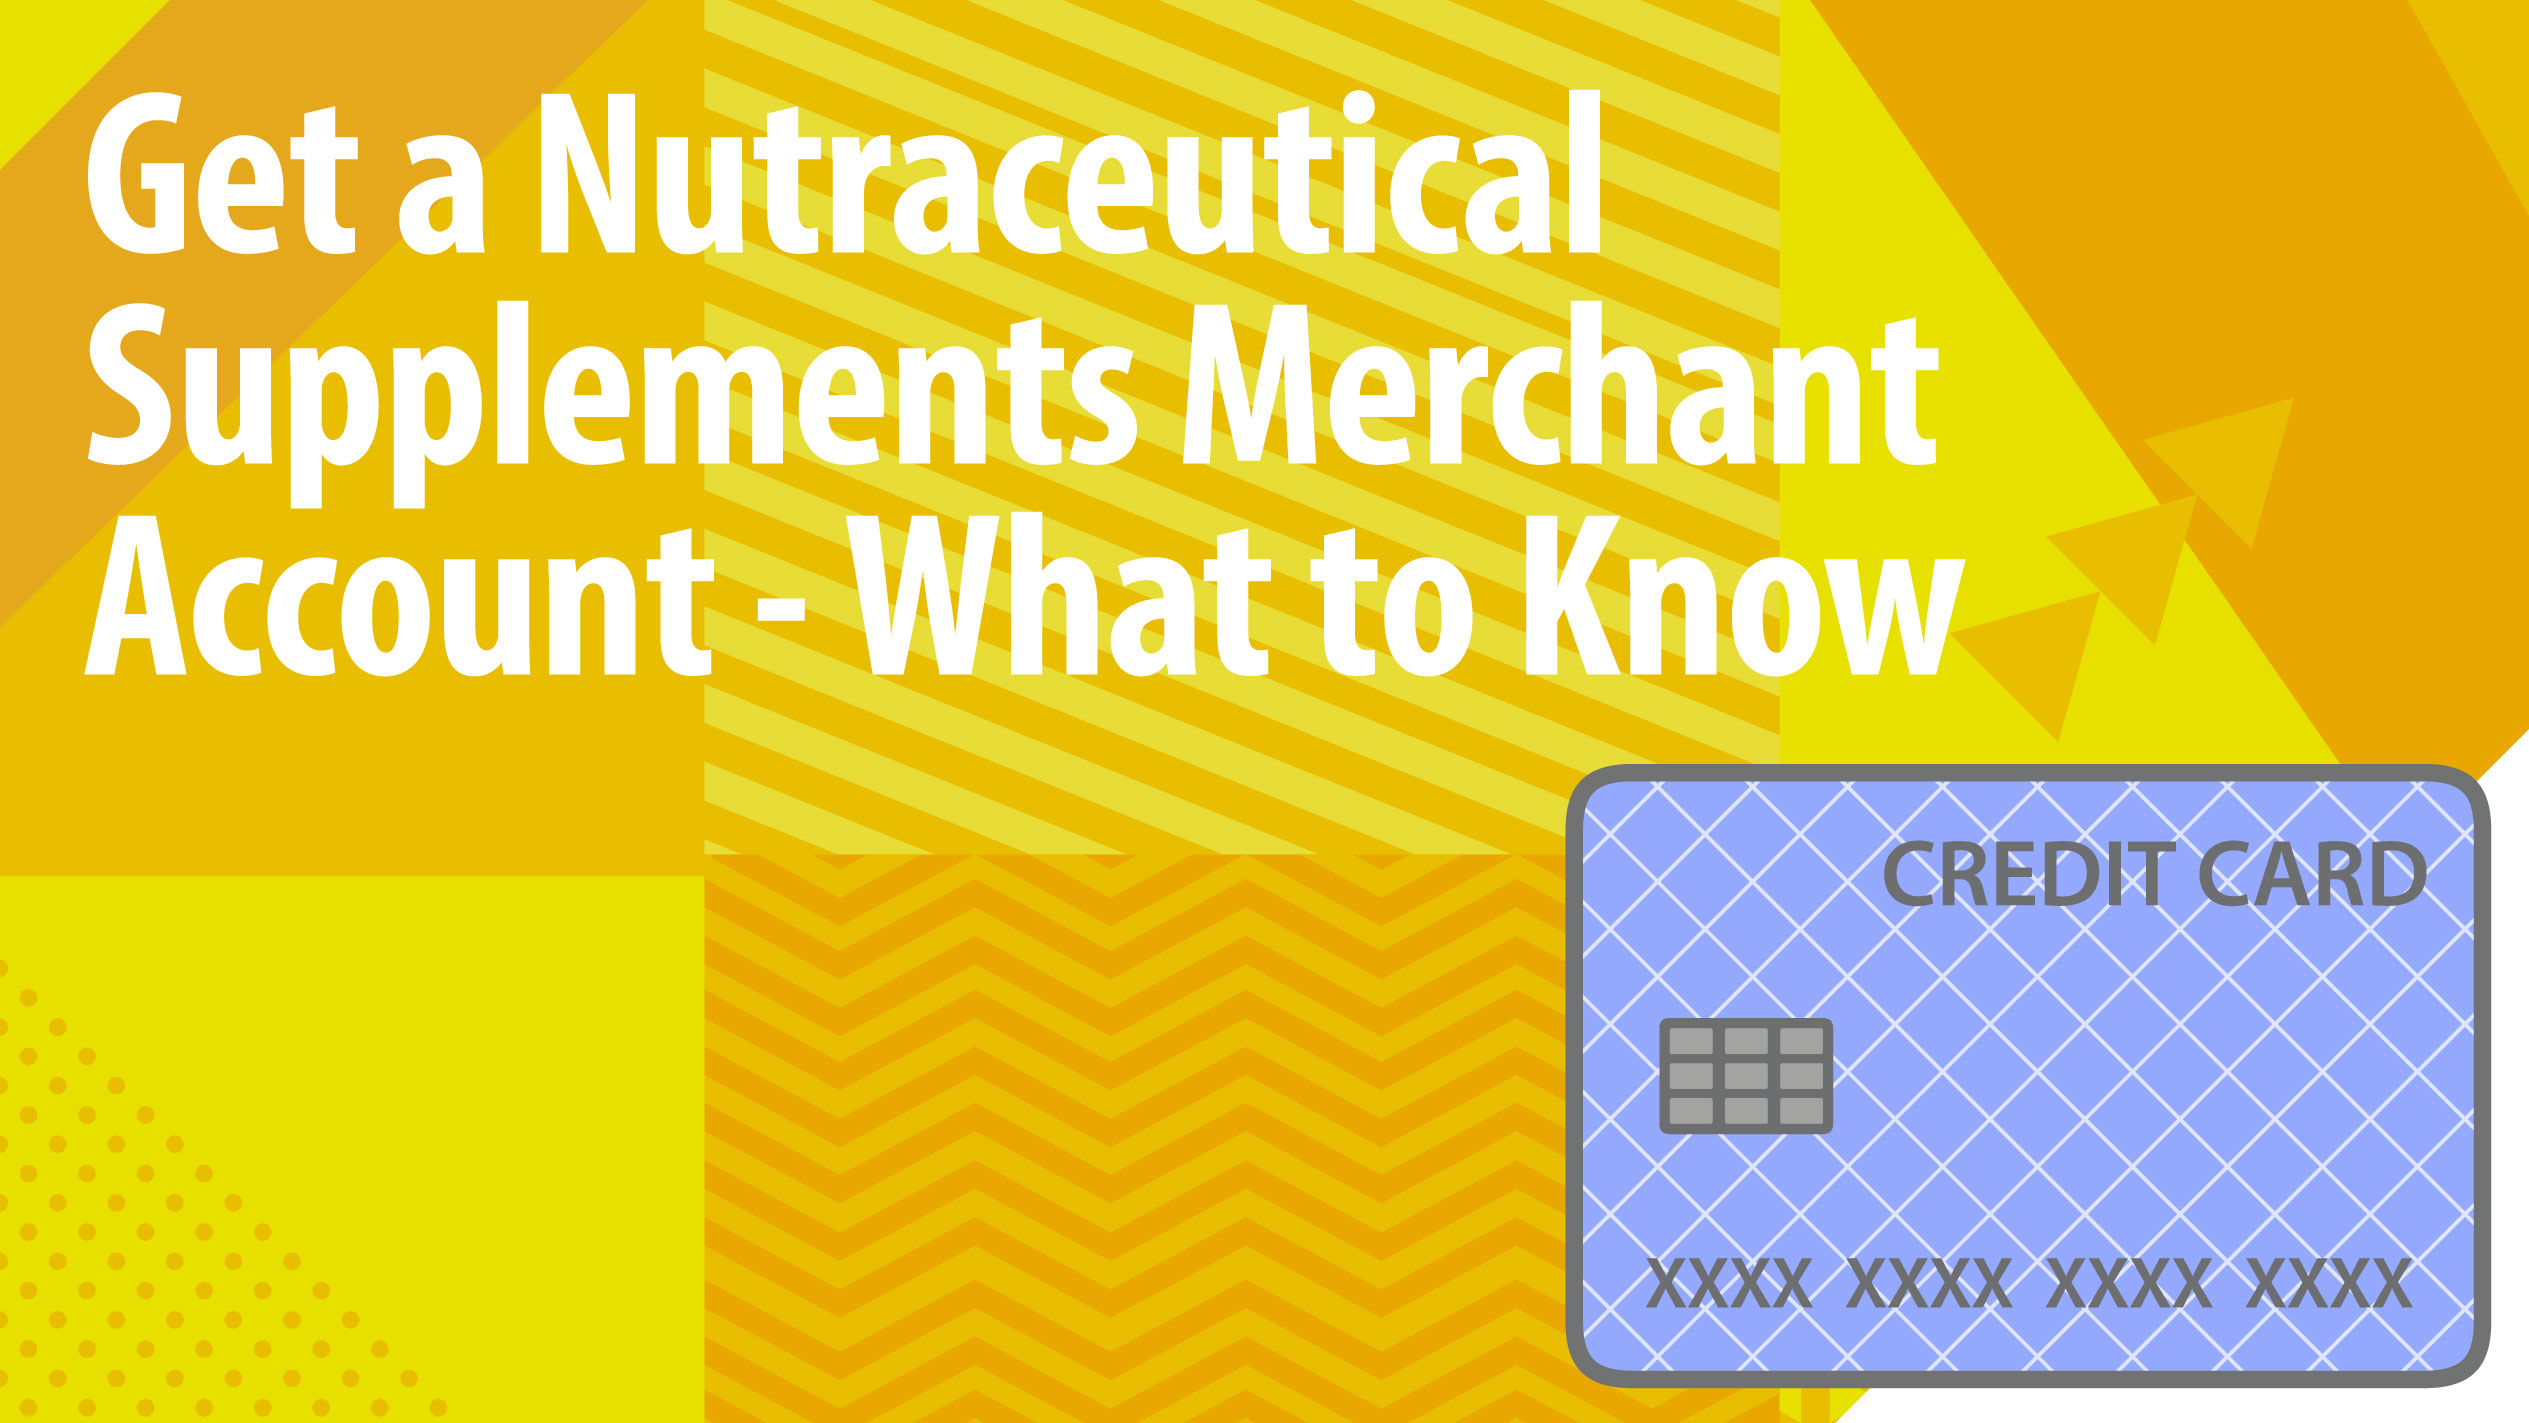 Get a Nutraceutical Supplements Merchant Account – What to Know